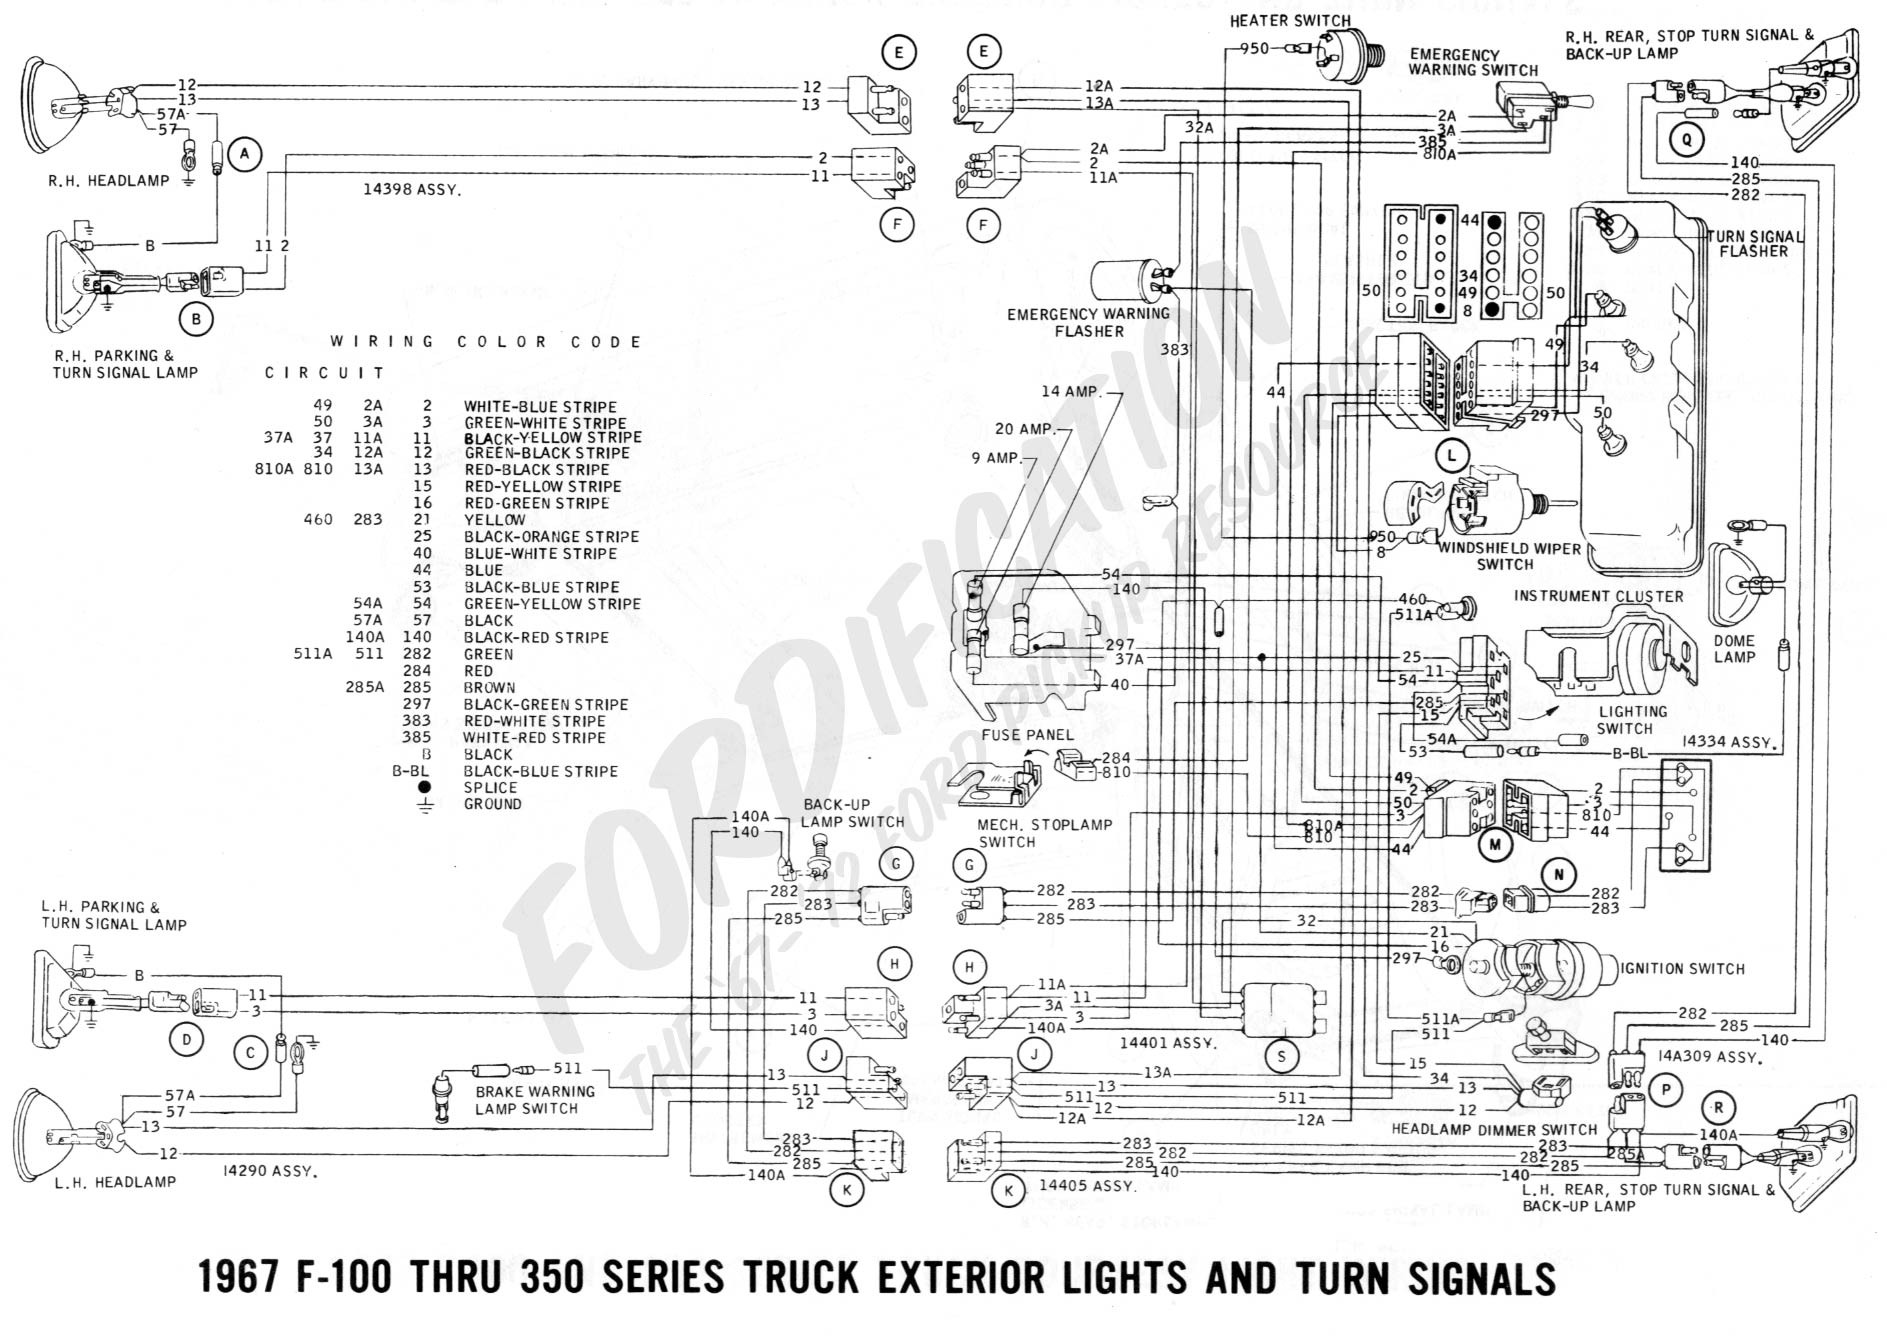 ttl power supply with eurcrowbareurtm protection by 7805 and scr1950 american motors wiring diagram index listing of wiring diagrams1950 dodge wiring wiring diagram1964 ford f100